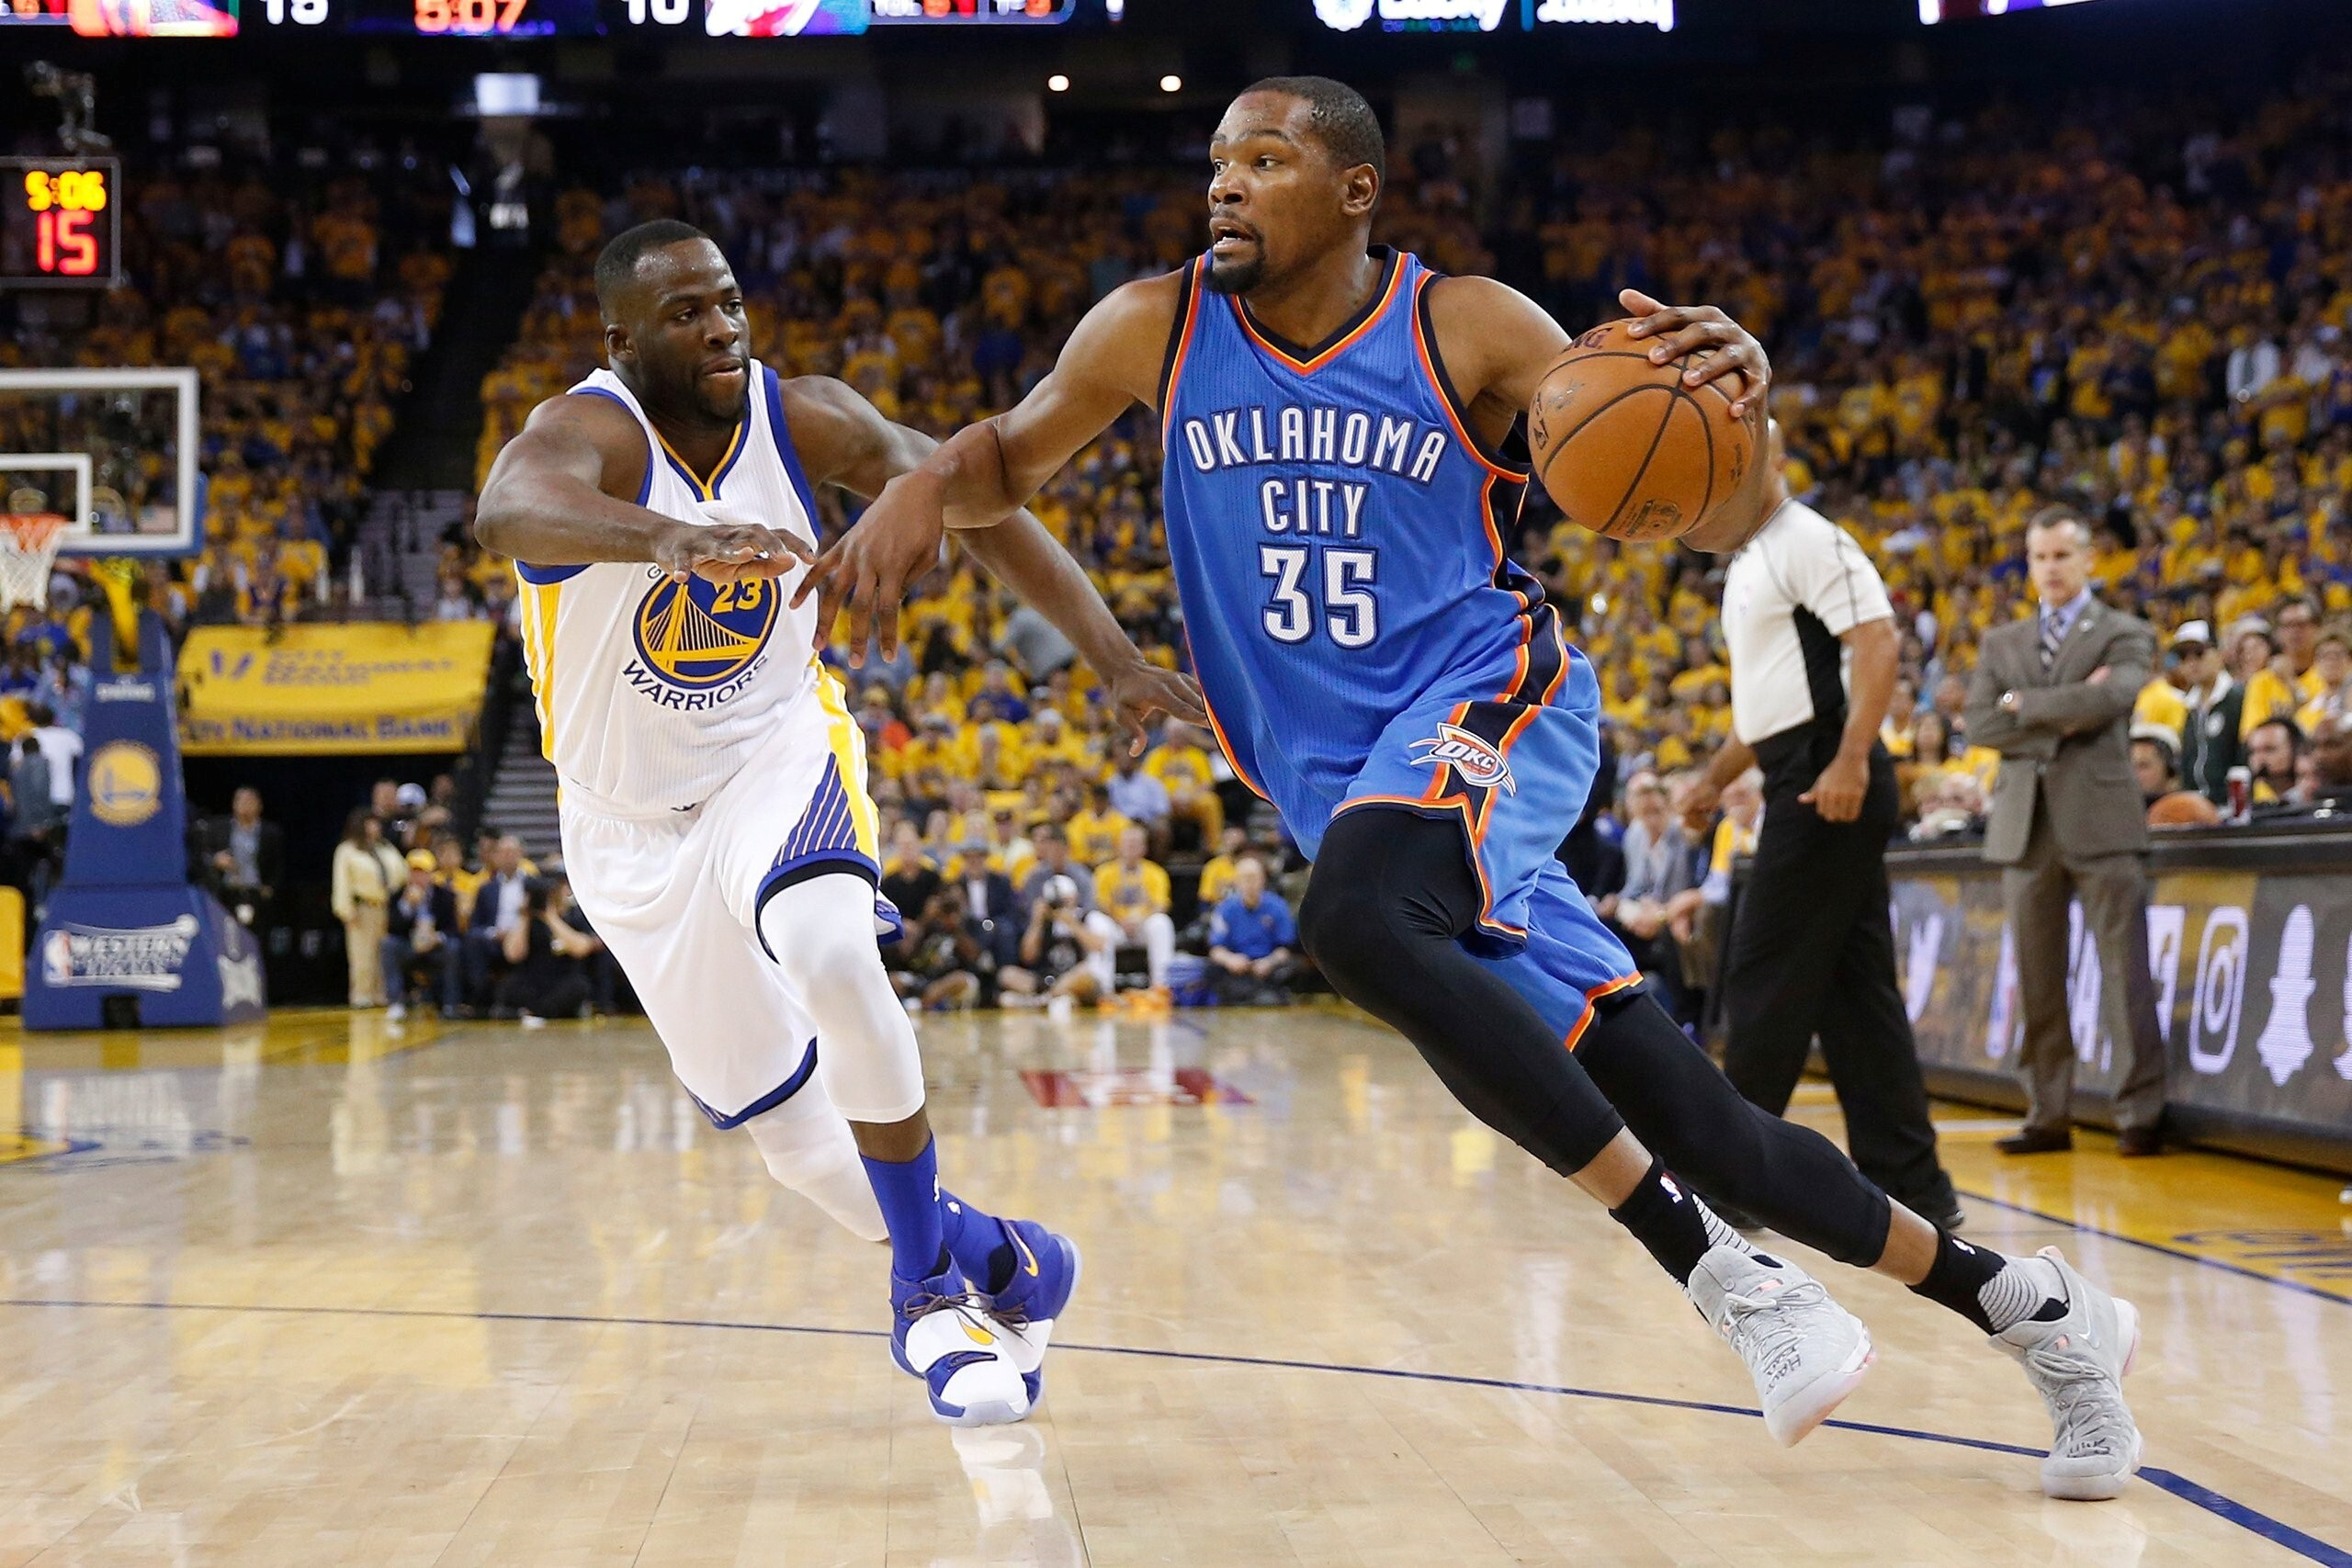 Basketball Kevin Durant Wallpapers: Kevin Durant Basketball Sport Game Photo